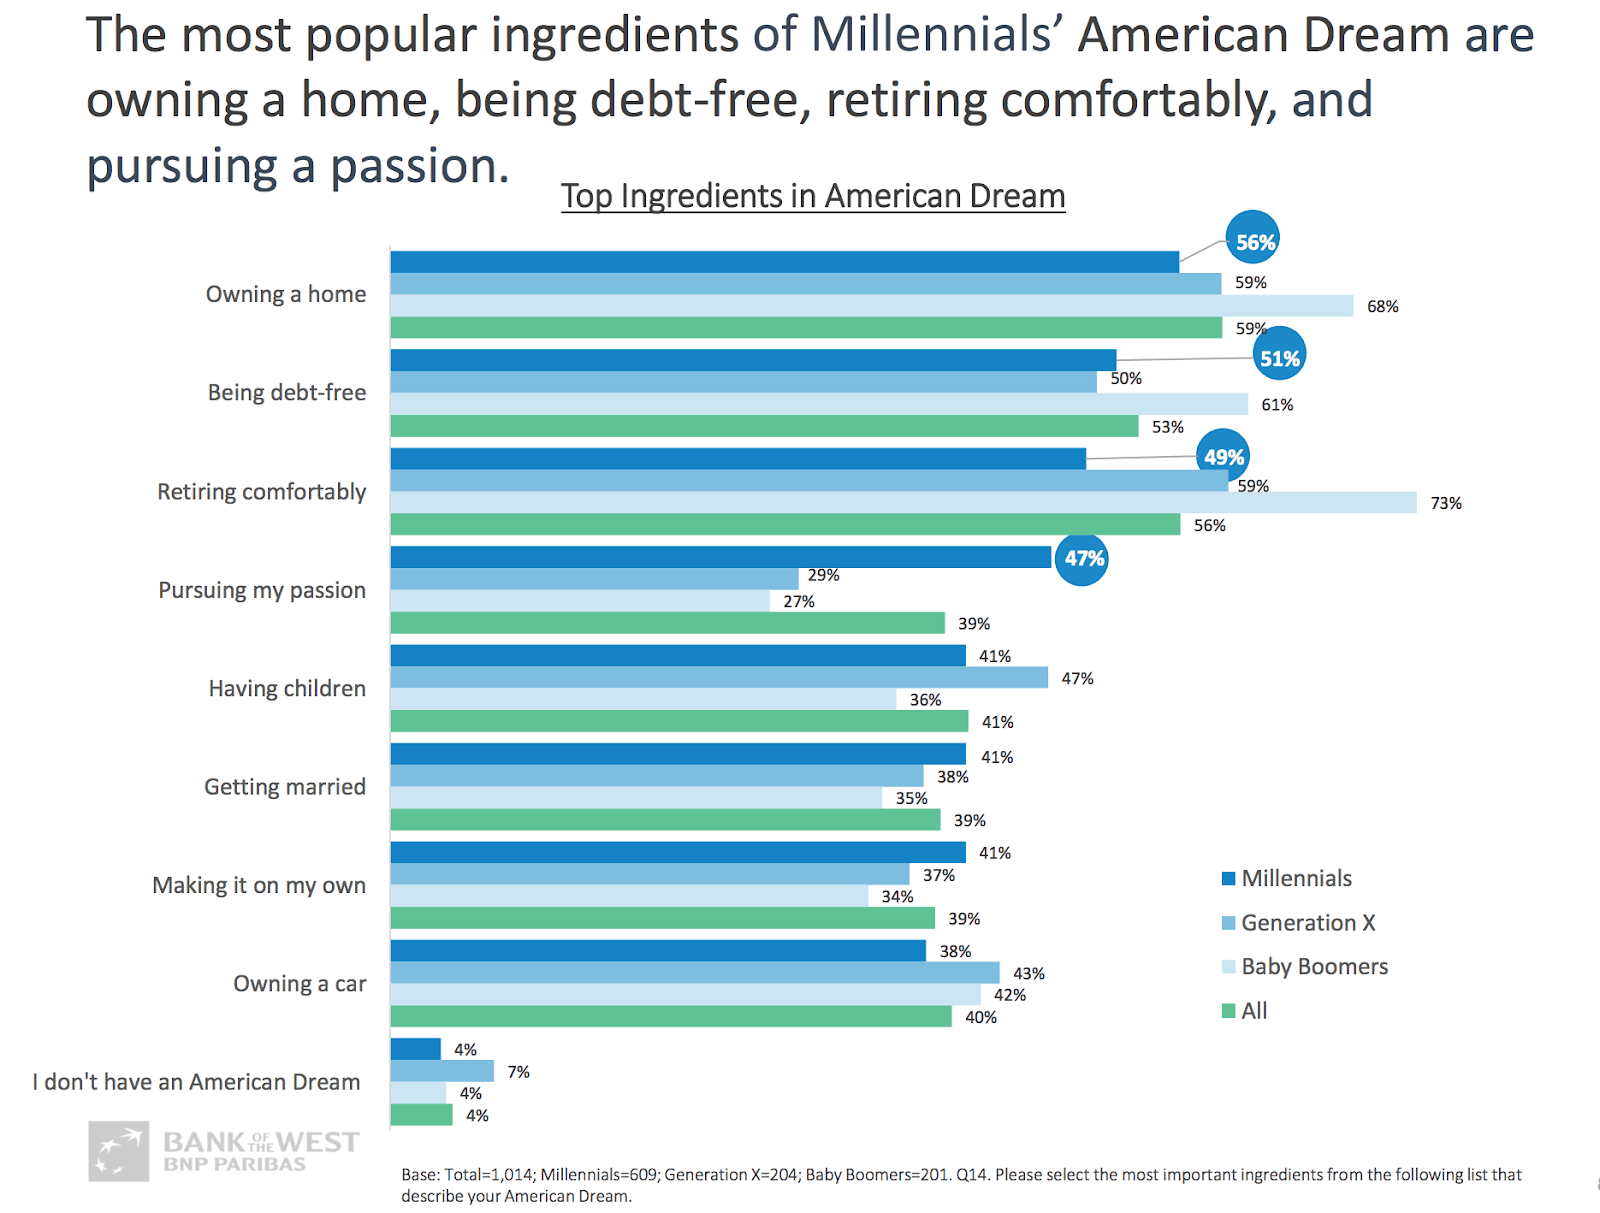 An infographic showing millennial trends in the American Dream.